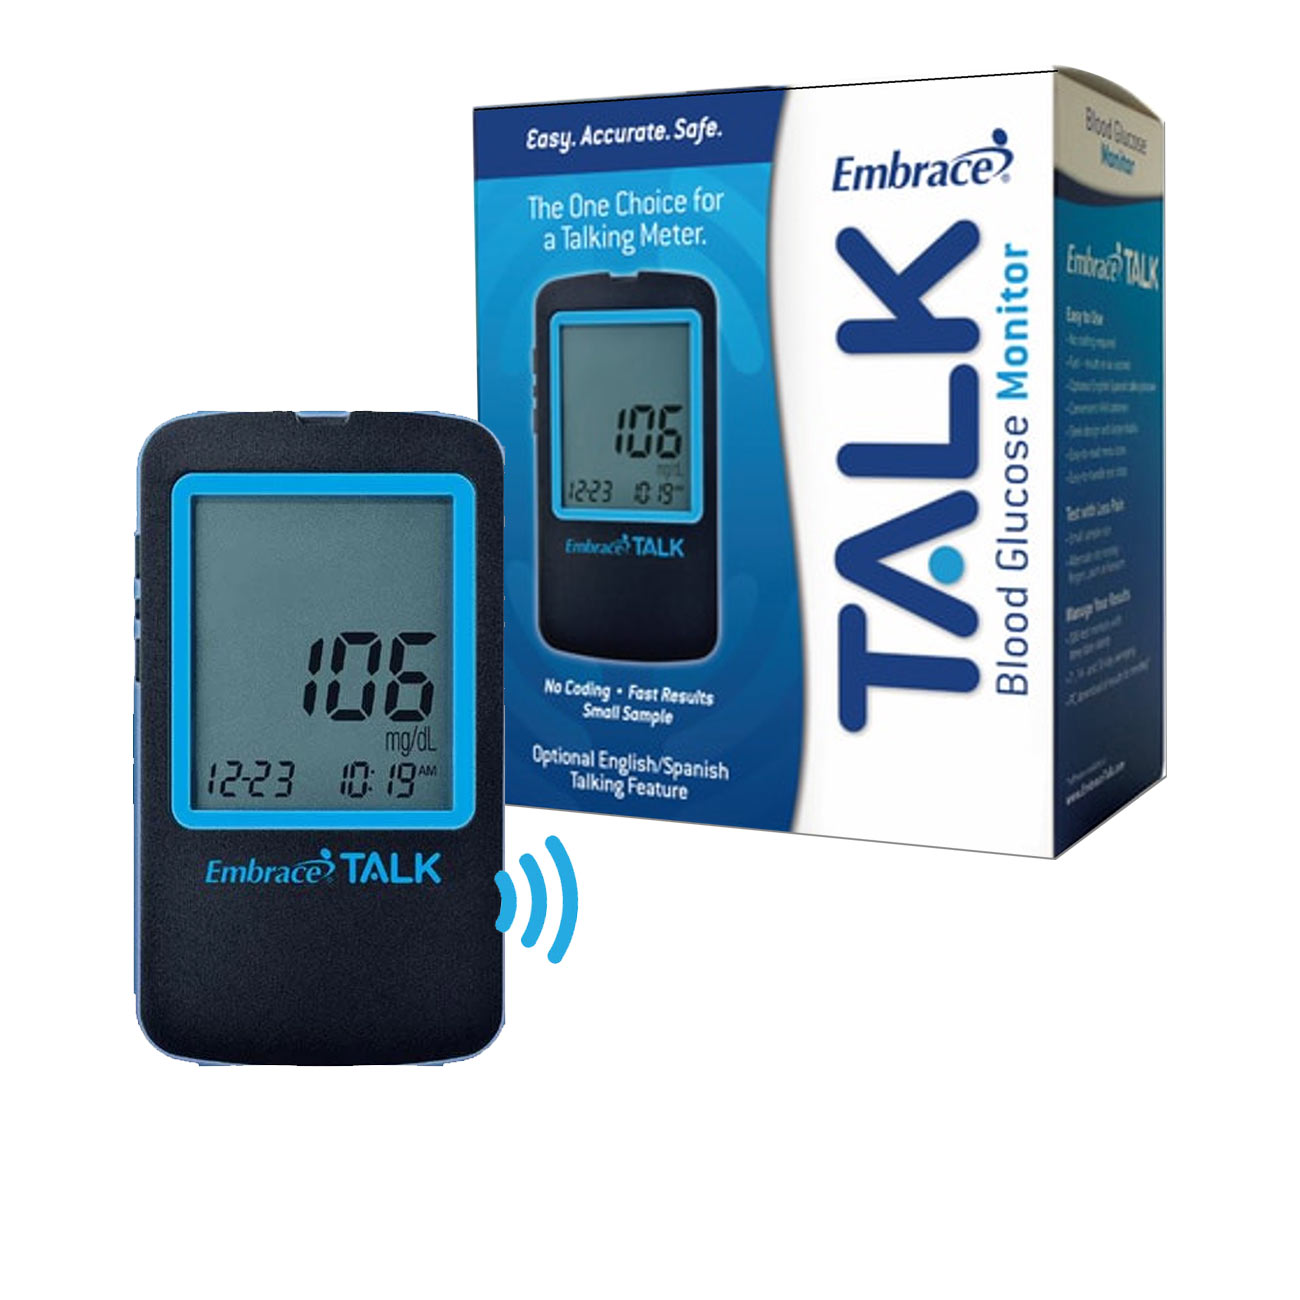 Embrace Talking Blood Glucose Monitoring System: Bilingual English/Spanish Price: $29.95